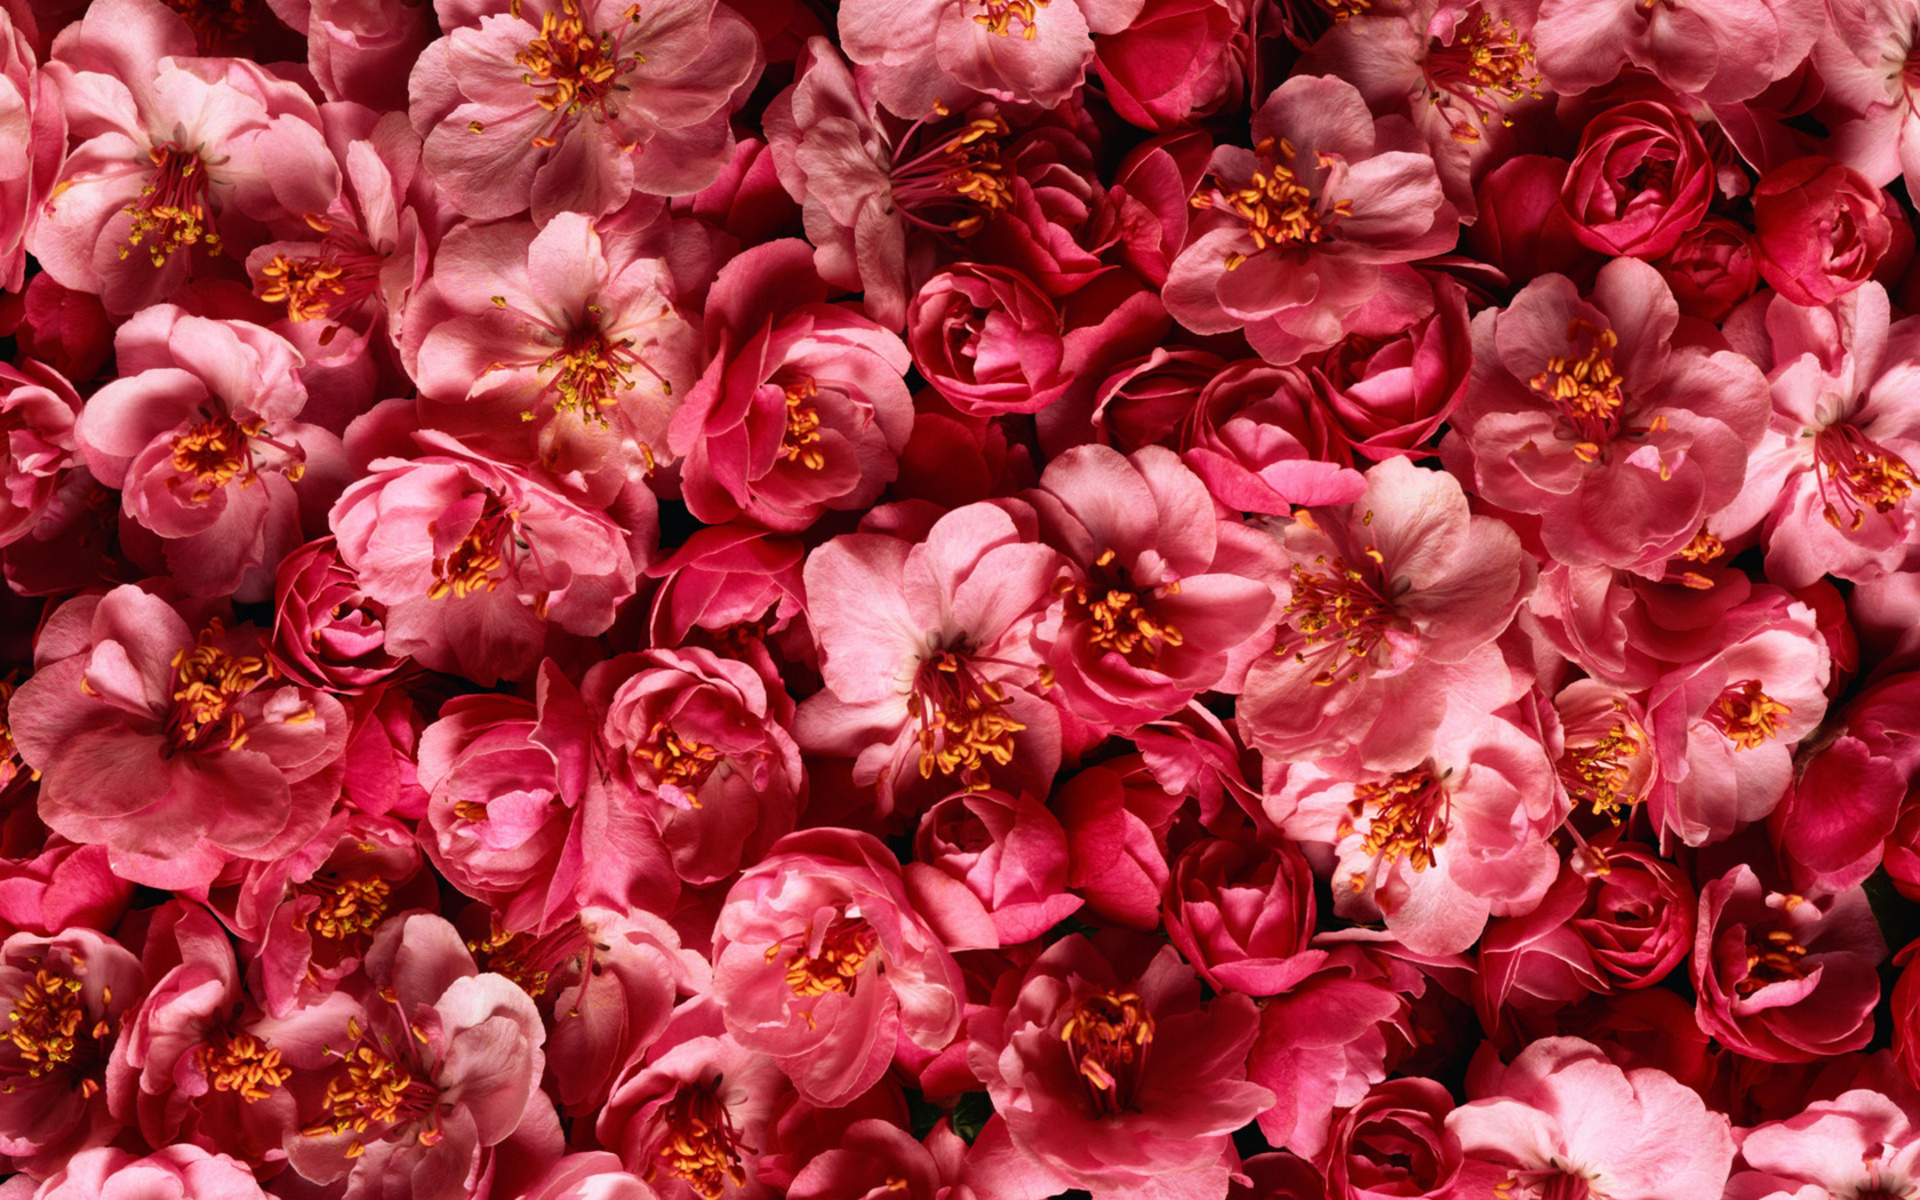 Nature flowers abstract pink colors patterns wallpaper 1920x1200 nature flowers abstract pink colors patterns wallpaper 1920x1200 22438 wallpaperup mightylinksfo